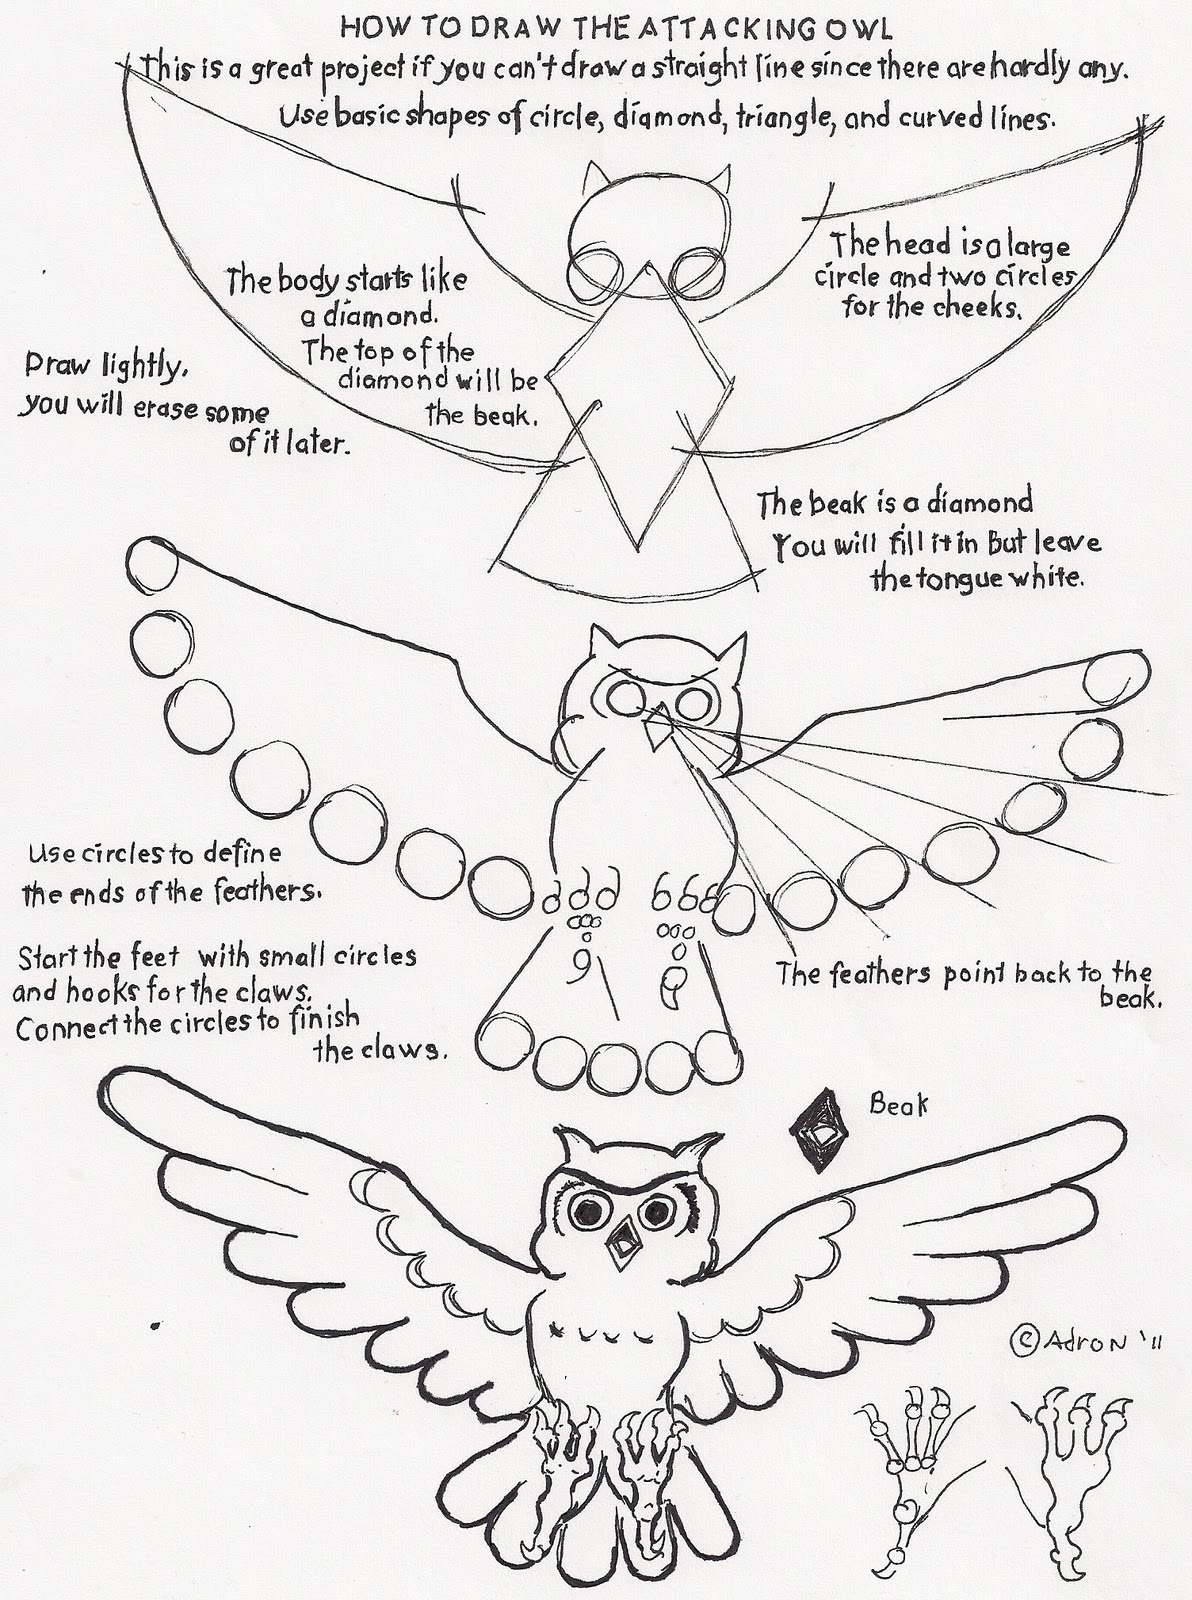 Owl Claws Drawing How to Draw an Attacking Owl